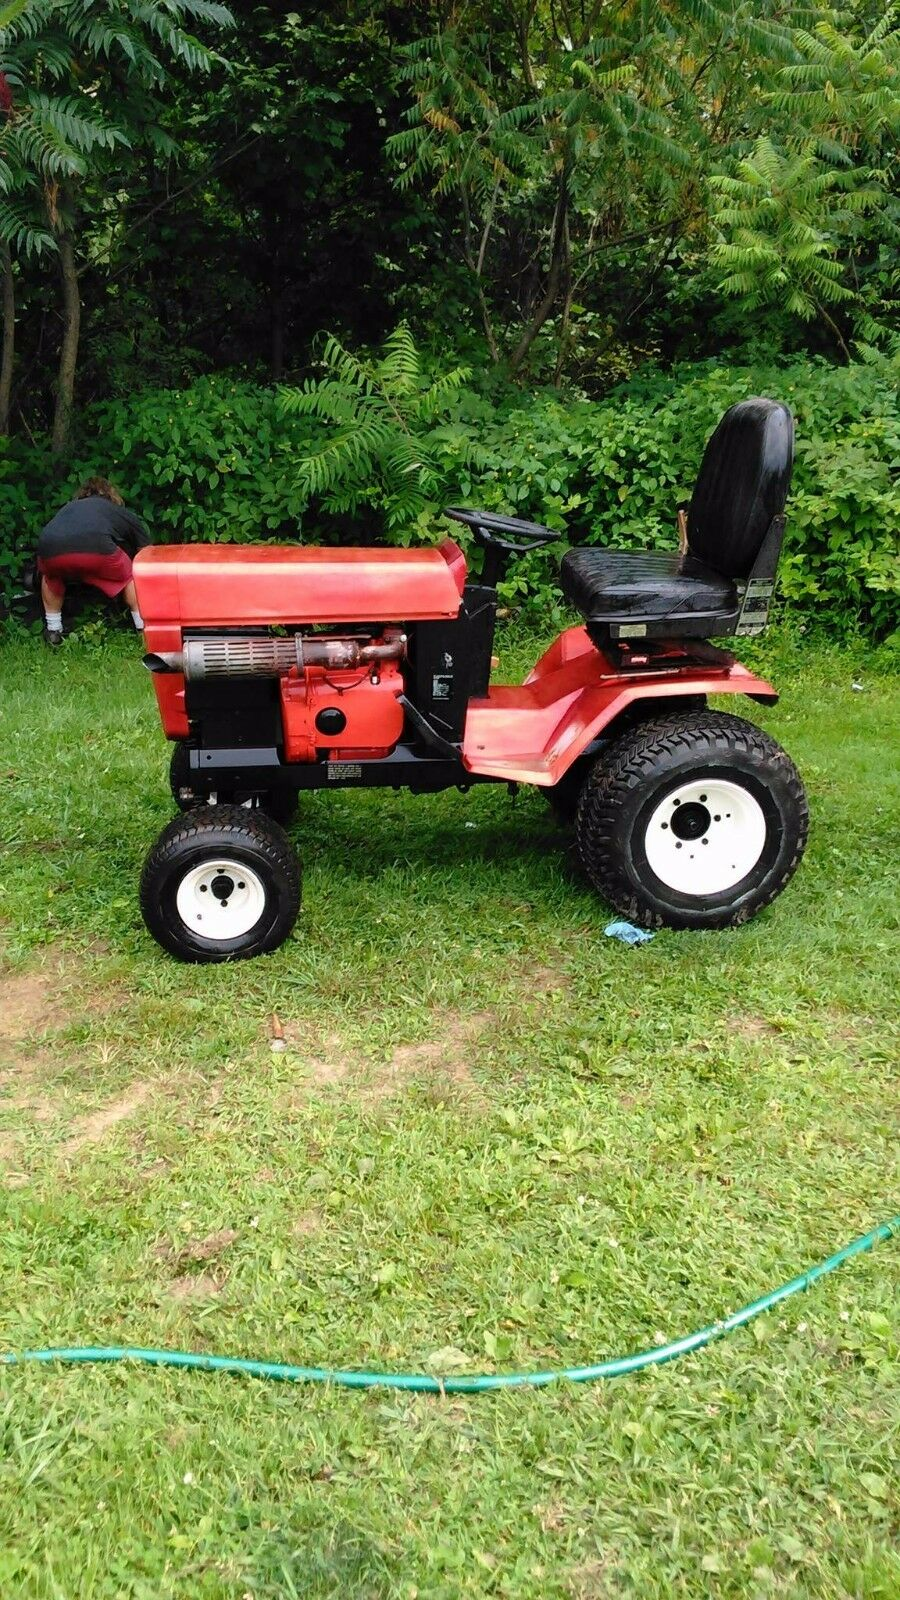 Bolens tractor ht20 with a 54 inch mower deck 1500.00 1 of 3Only 1  available Bolens tractor ...